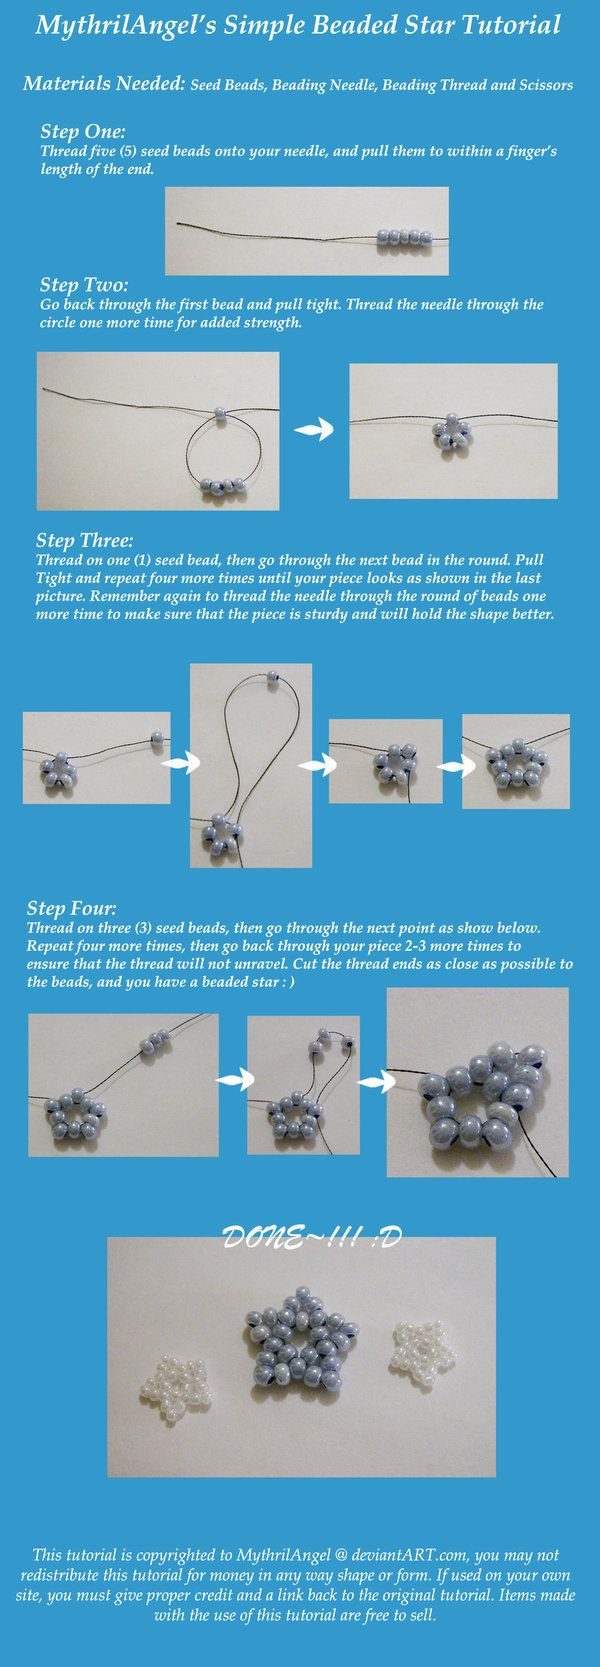 111 best Beading images on Pinterest   Seed beads, Bead jewelry and ...